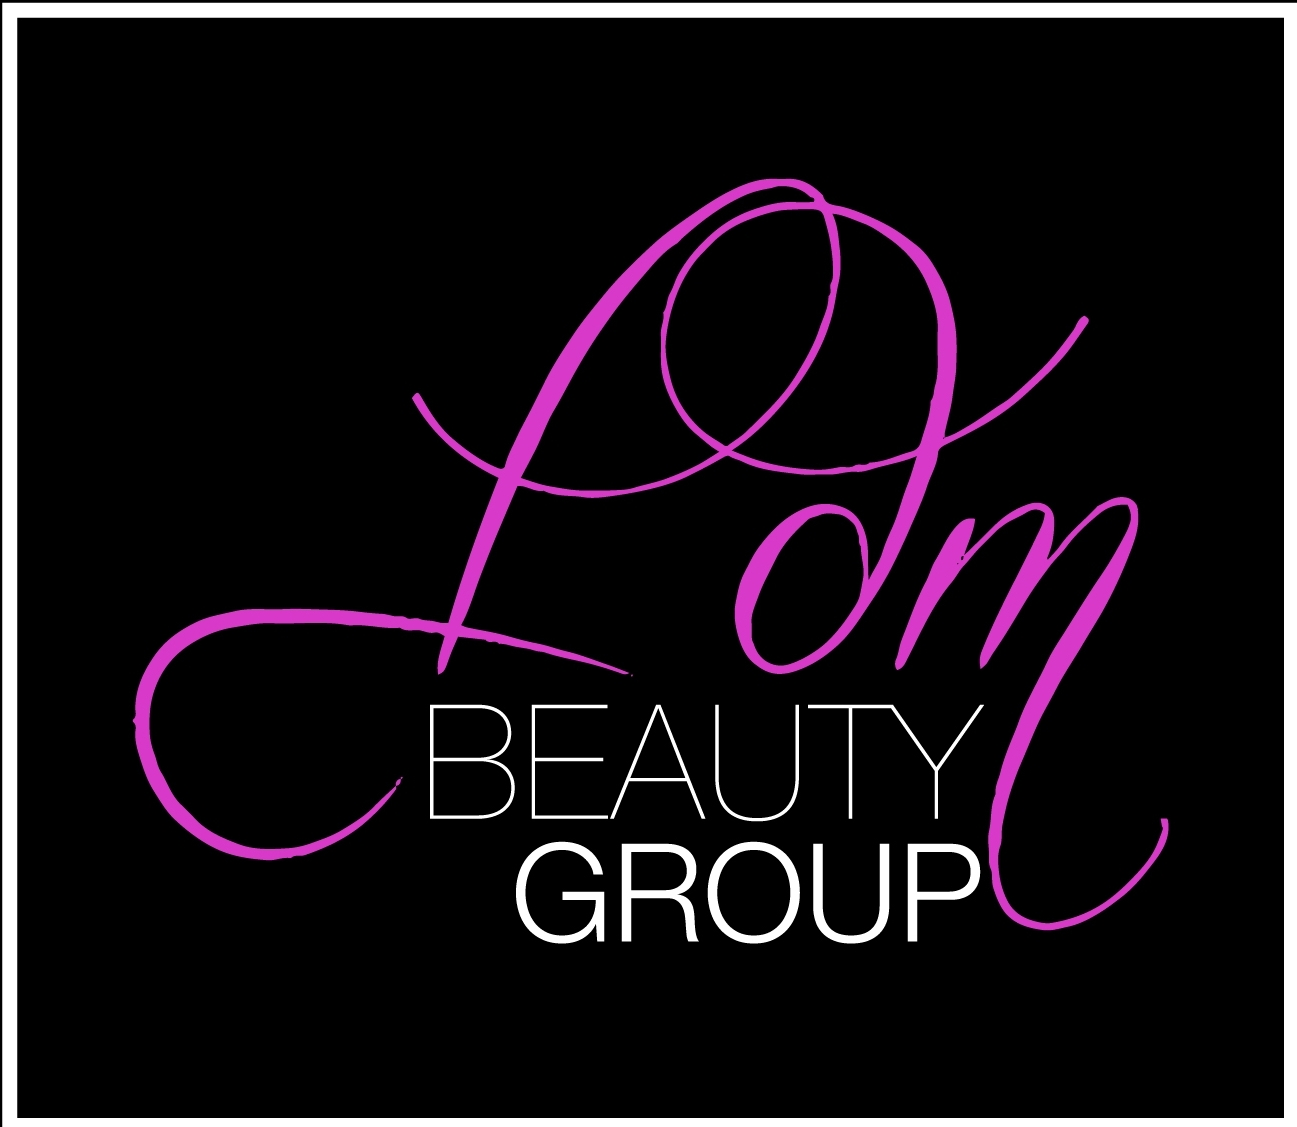 Lindsay Does Makeup LDM Beauty Group